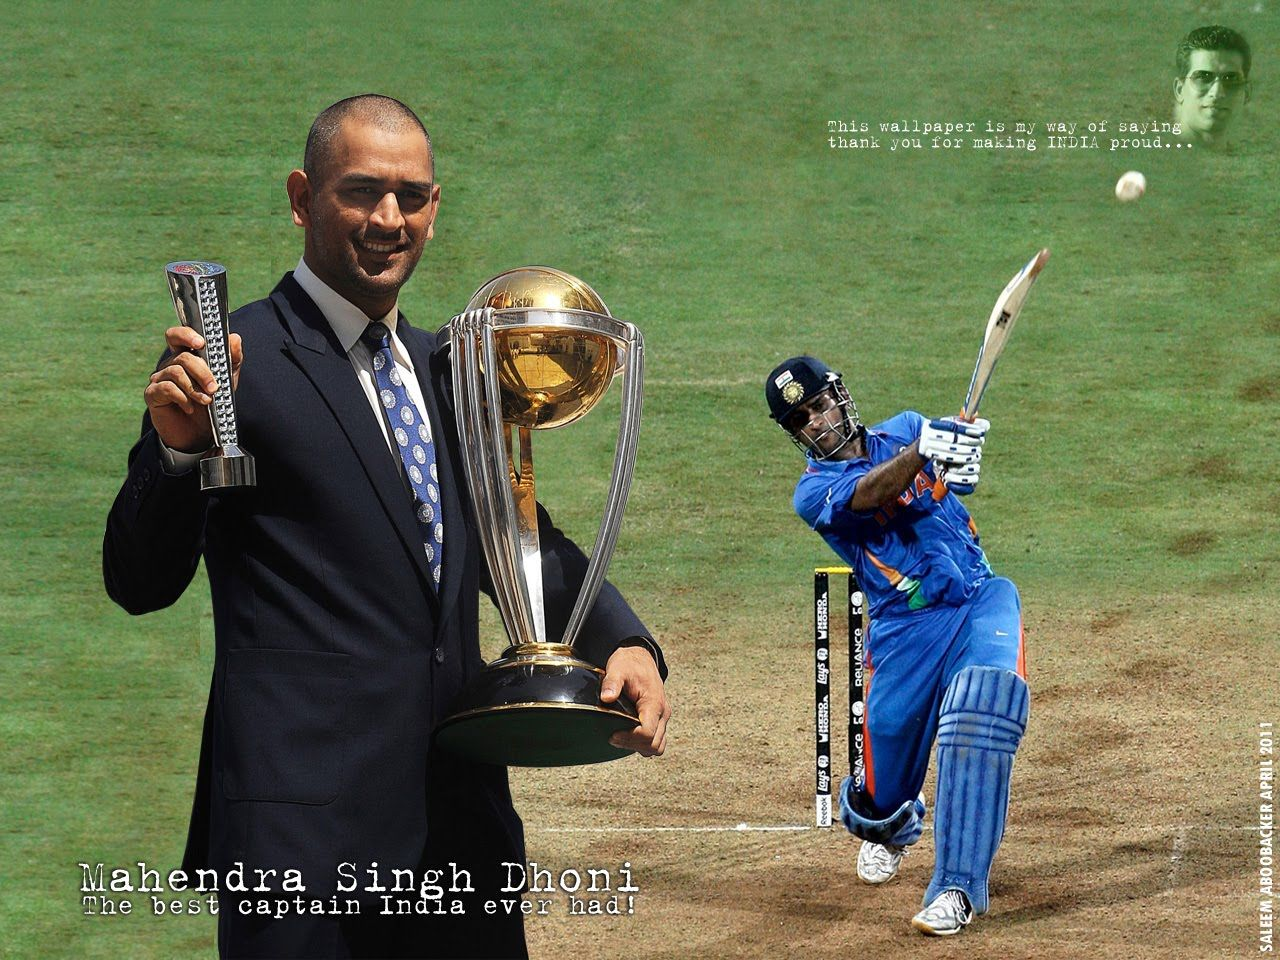 Mahendra Singh Dhoni Wallpapers 1024 768 Wallpapers Of Mahendra Singh Dhoni 64 Wallpapers Adorable Wal Dhoni Wallpapers Ms Dhoni Wallpapers Ms Dhoni Photos